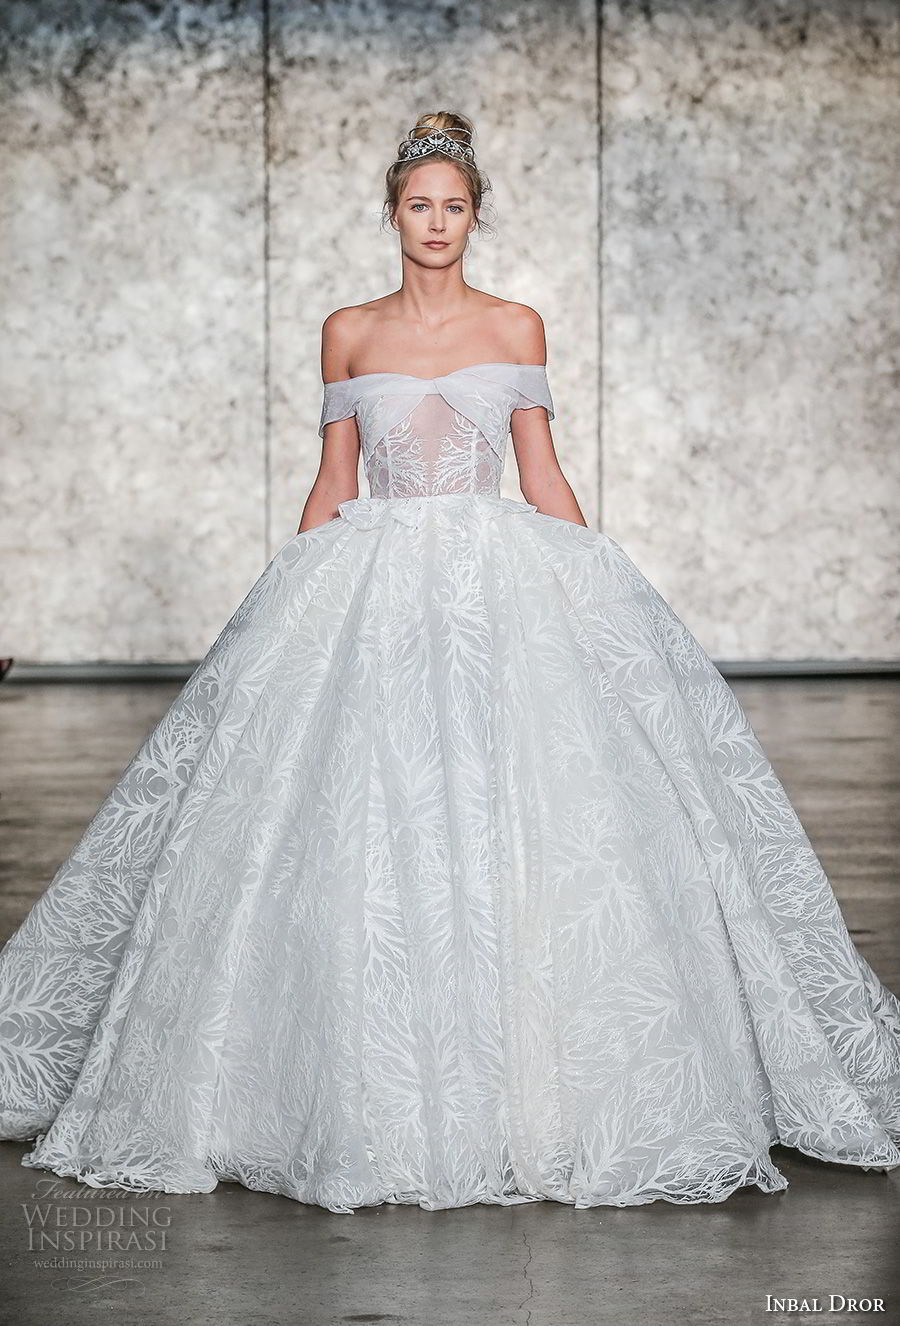 inbal dror fall 2018 bridal off the shoulder straight across neckline full embellishment princess ball gown wedding dress royal train (27) mv